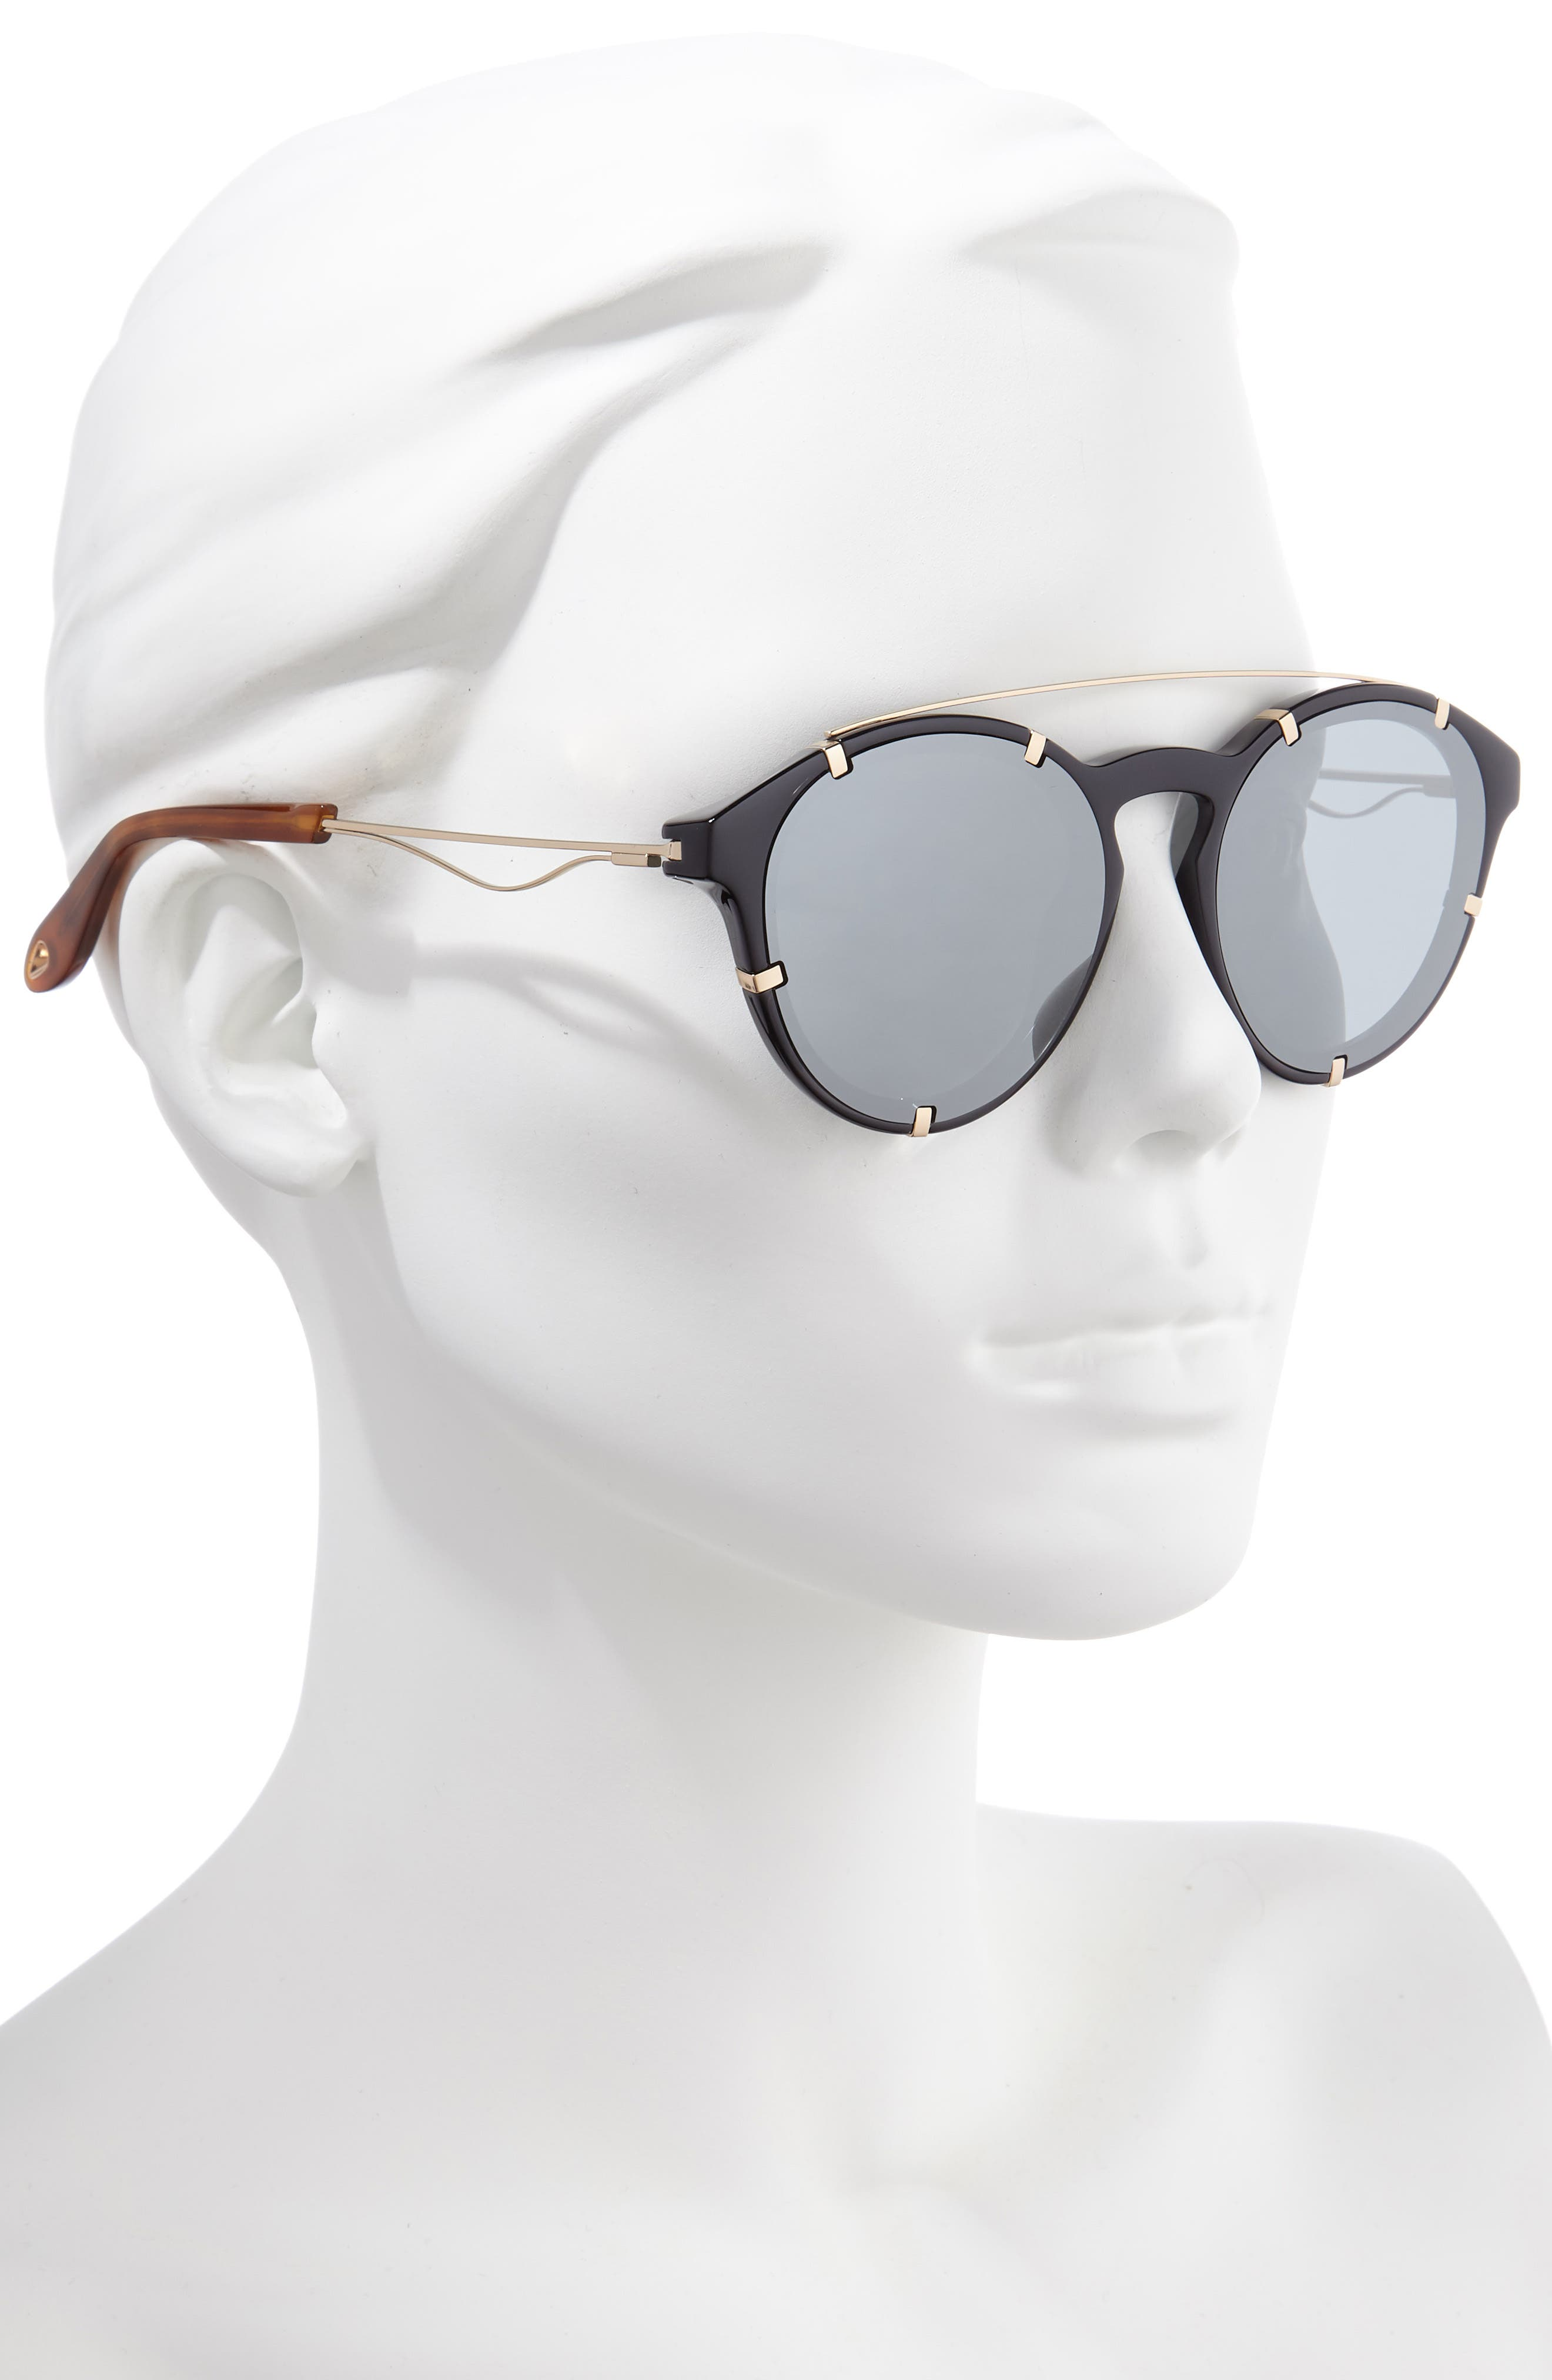 a402b0041705c Givenchy Sunglasses for Women